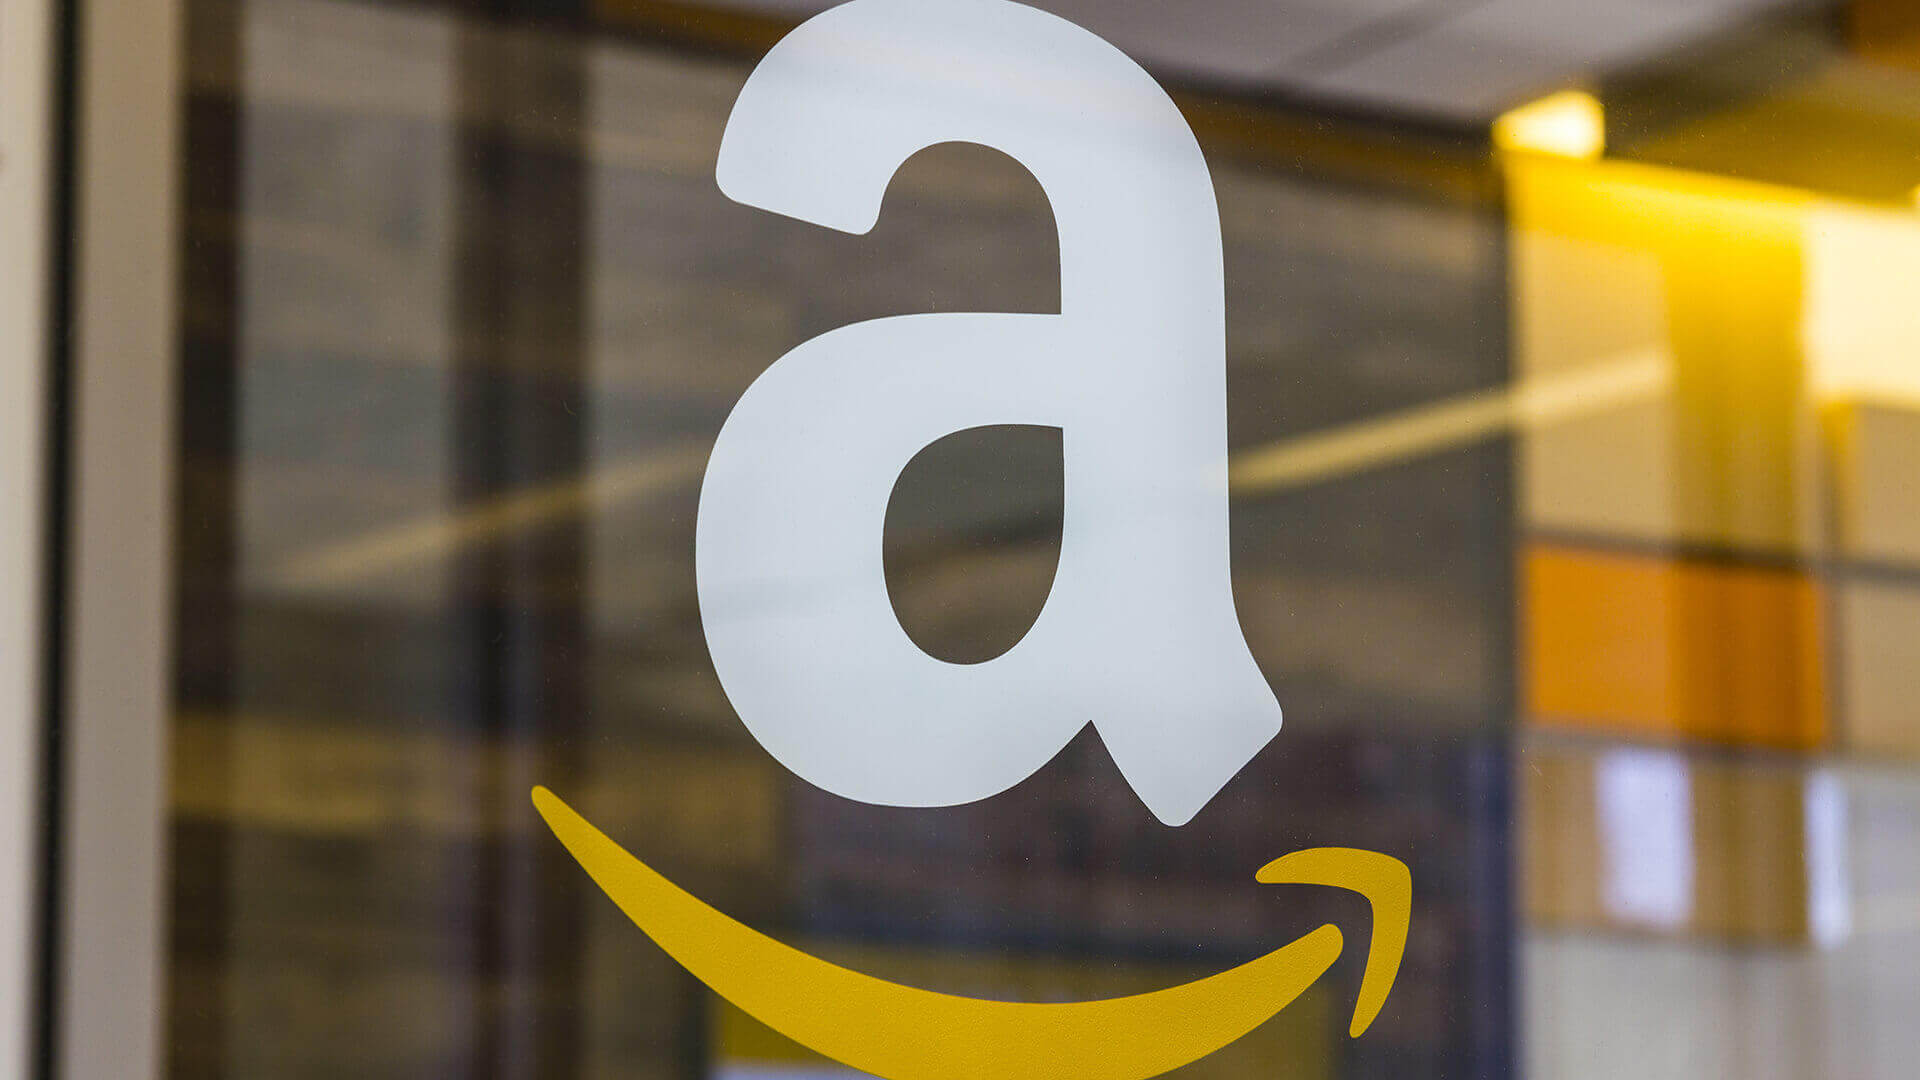 Is Amazon friend or foe? Retailers must weigh the opportunity before tapping revenue gains